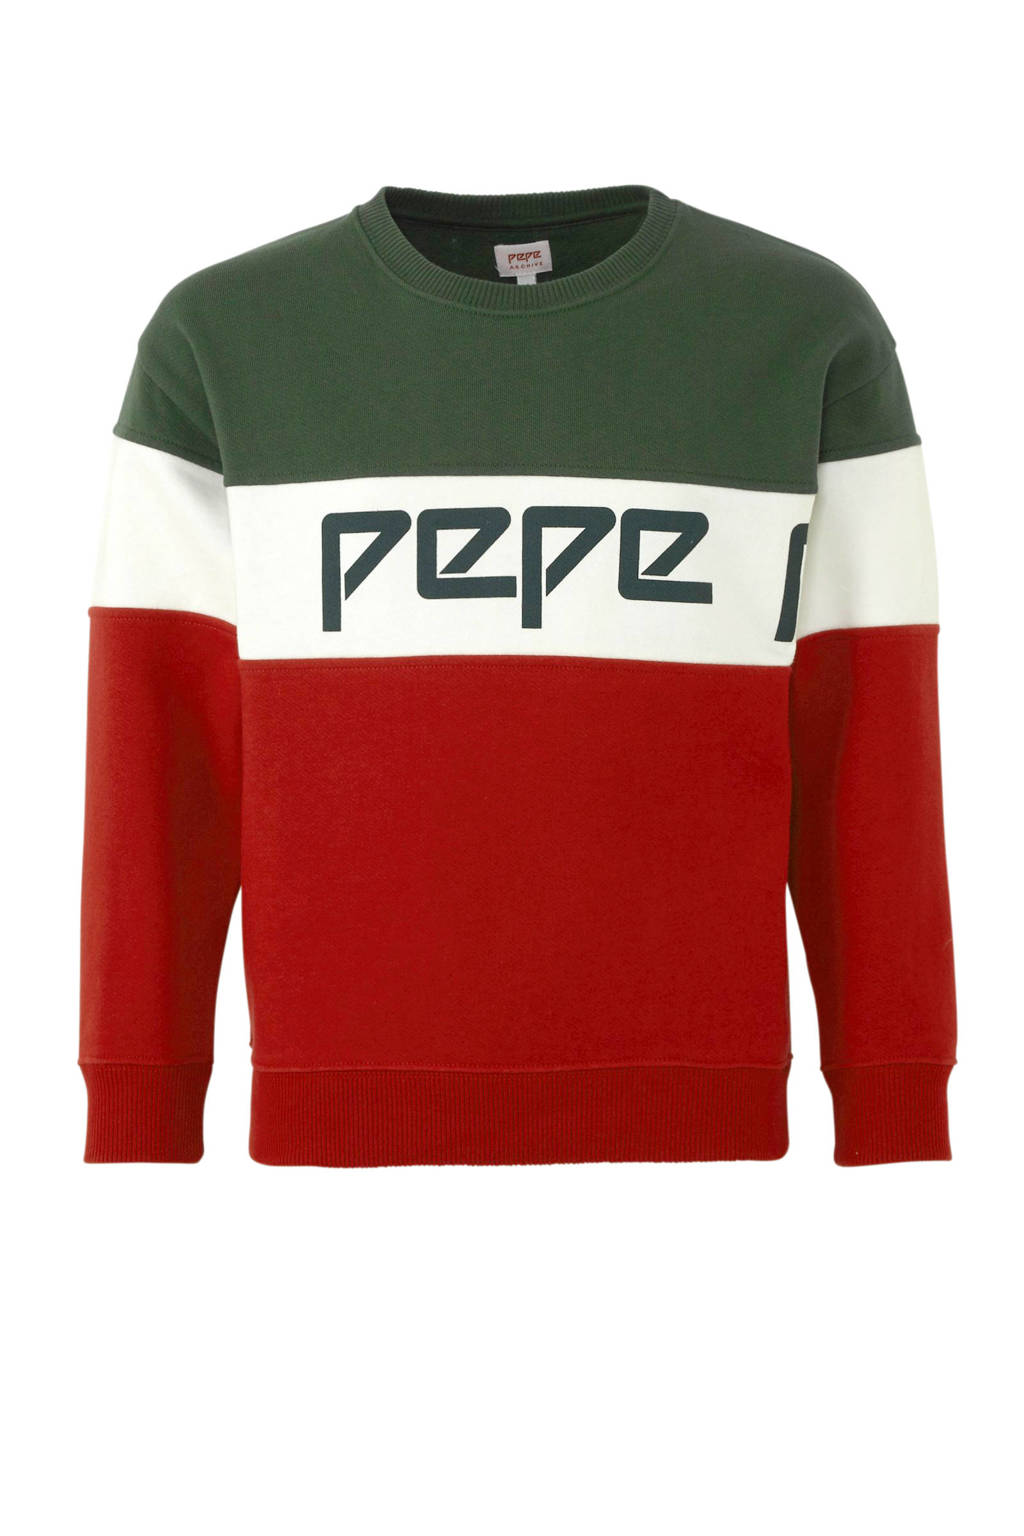 Pepe Jeans sweater Suso met all over print rood/groen/wit, Rood/groen/wit